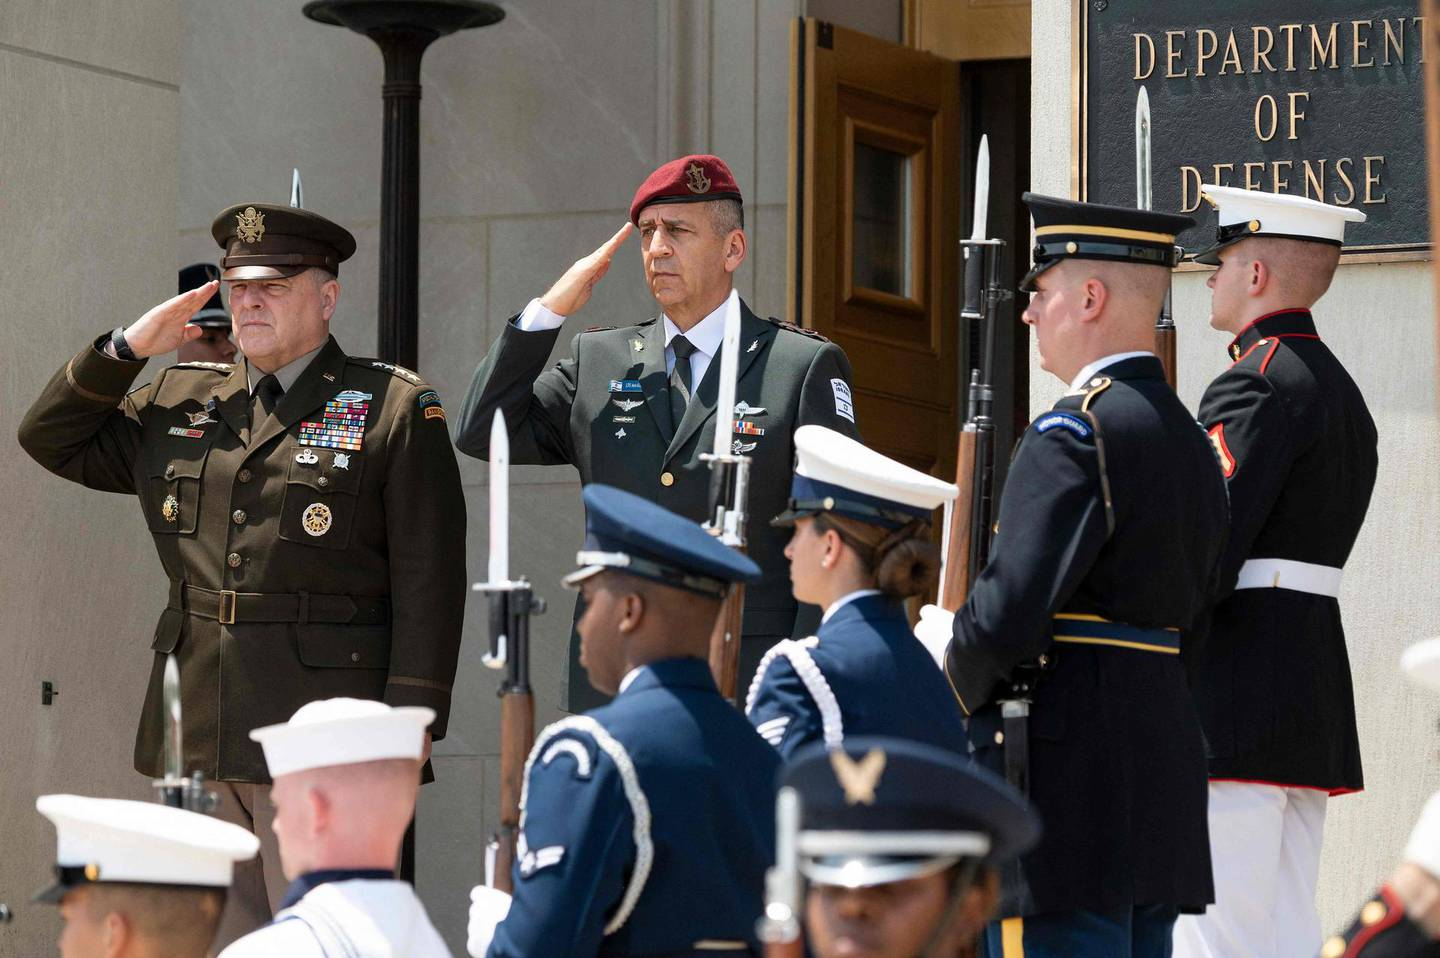 Chairman of the Joint Chiefs of Staff Army General Mark Milley (L) hosts an enhanced honor cordon for the Israeli Chief of Defense LTG Aviv Kohavi at the Pentagon in Washington, DC, on June 21, 2021. / AFP / JIM WATSON